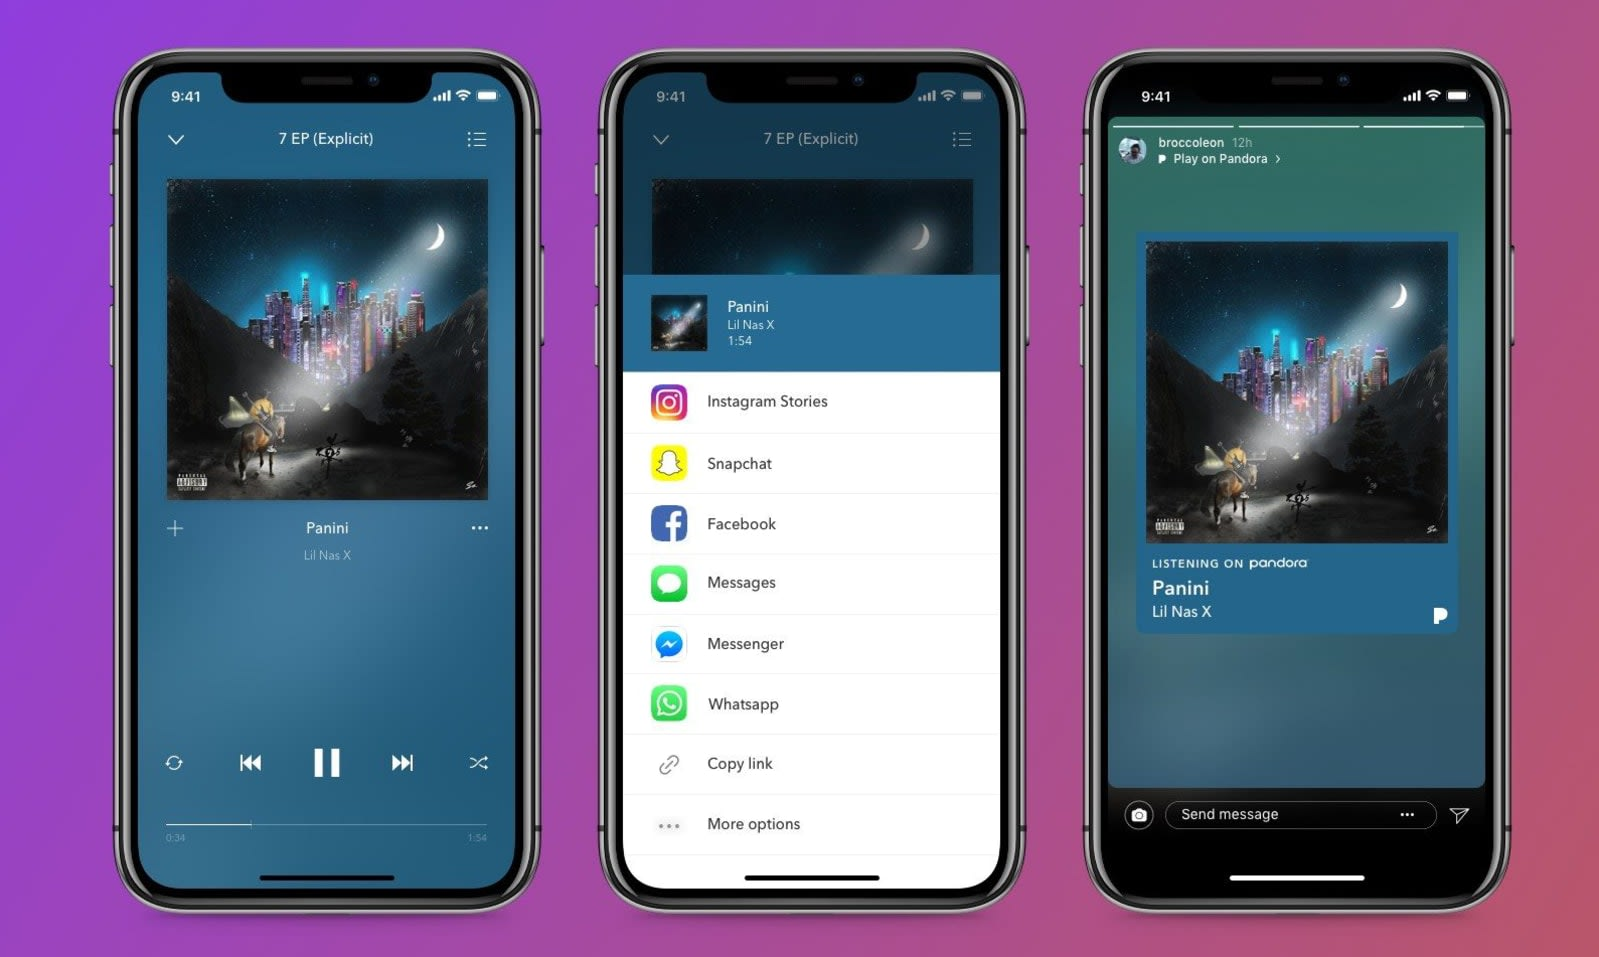 You can share Pandora music and podcasts on Instagram, if